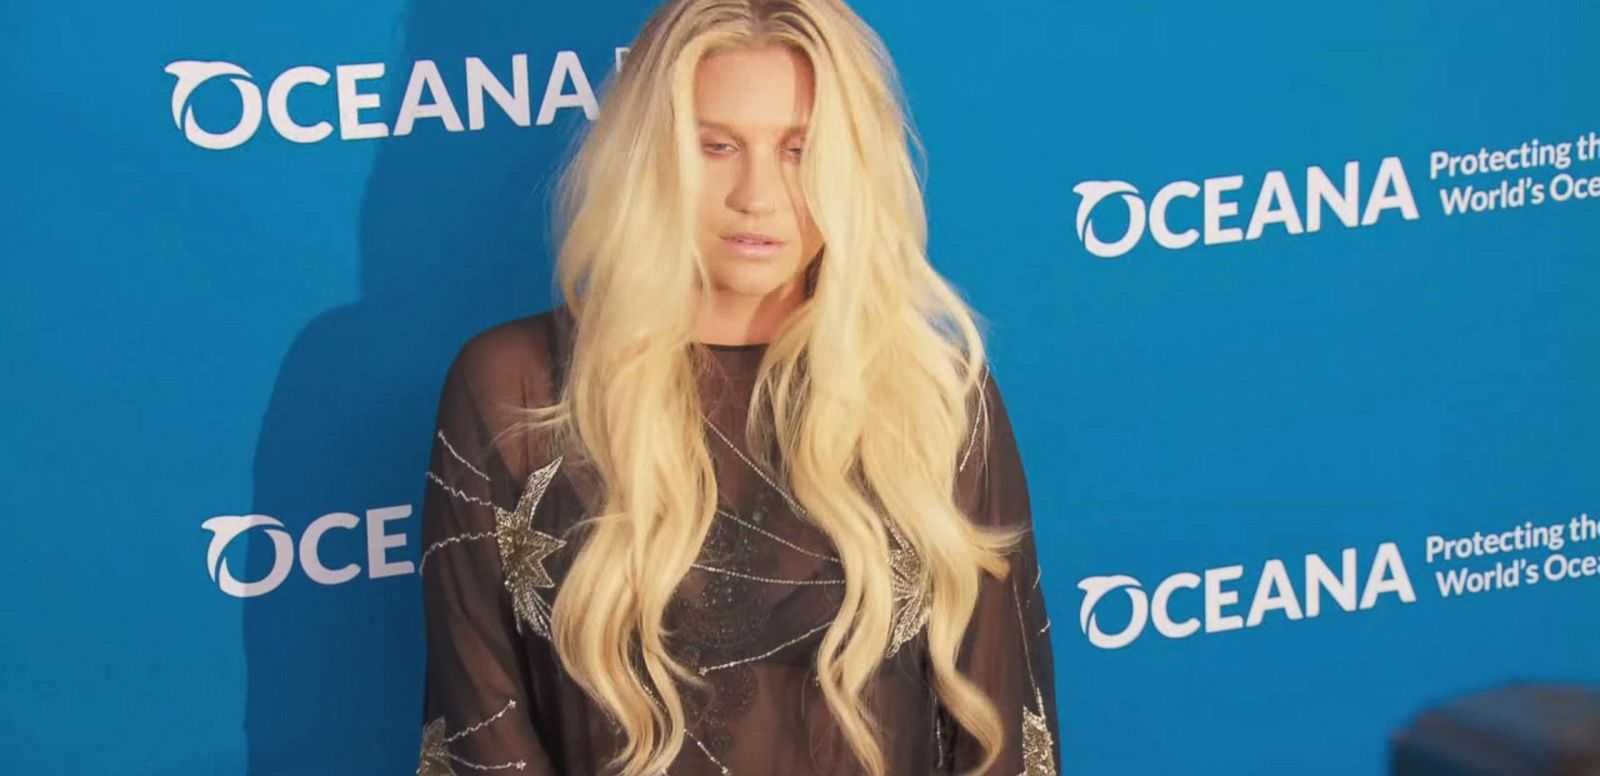 VIDEO: Stars, Fans Voice Support for Kesha After Judges Ruling